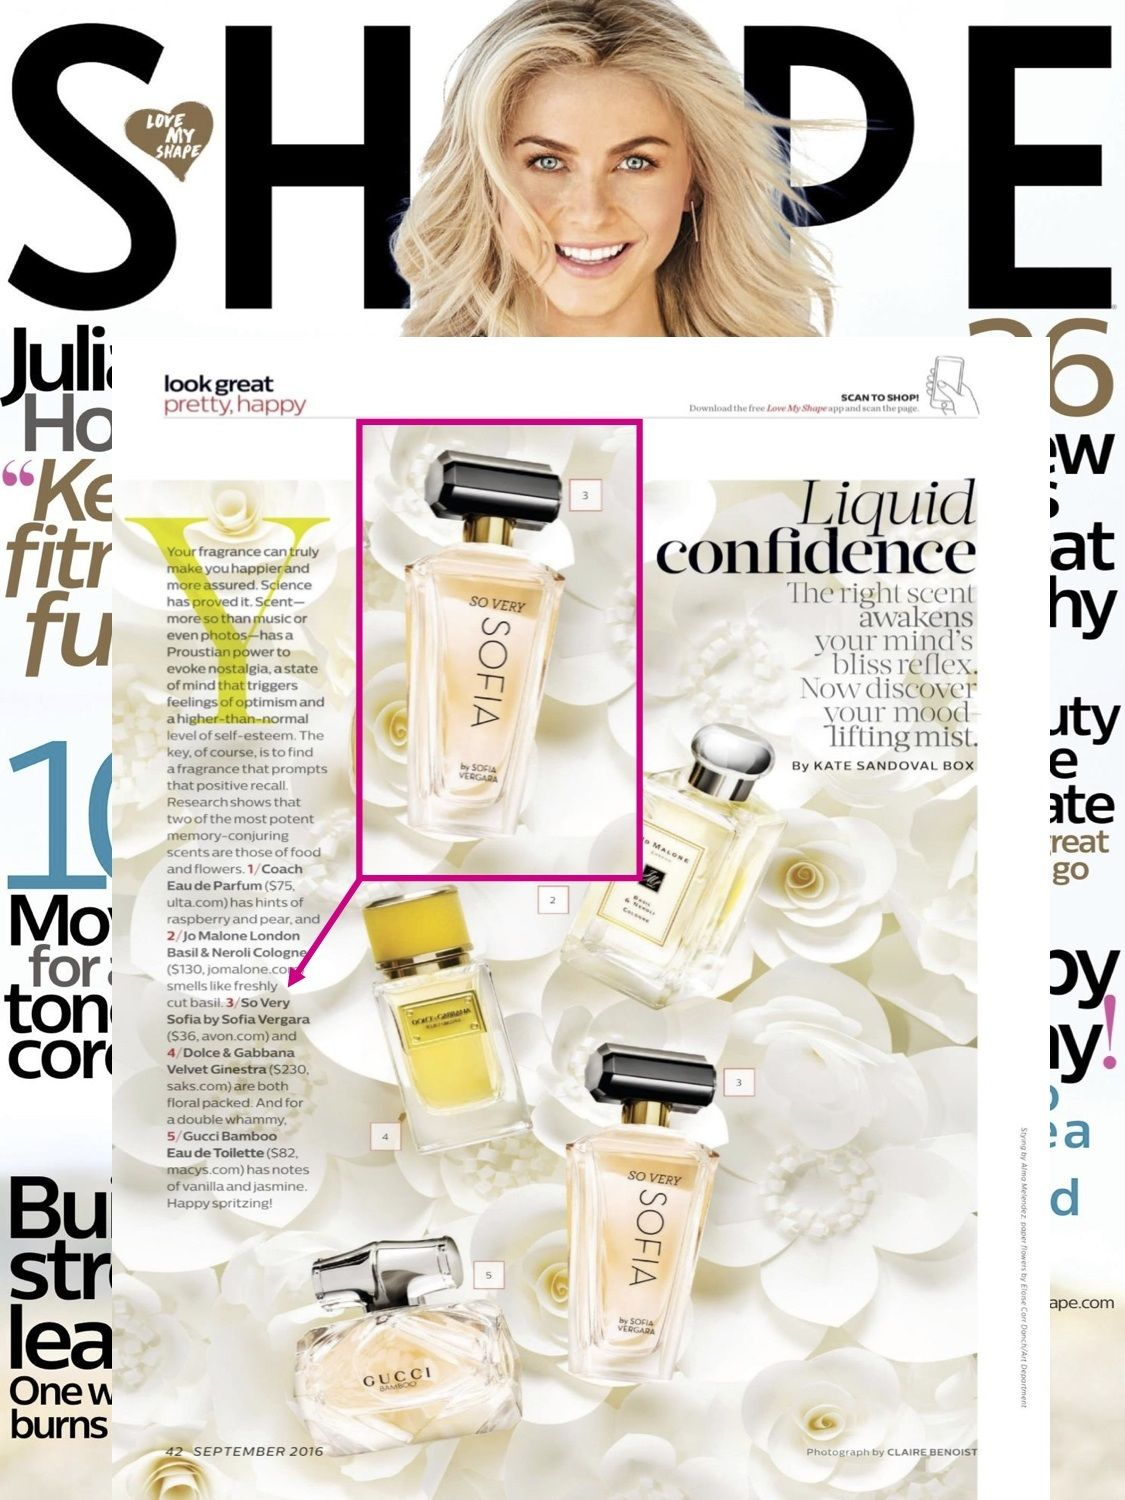 Looking for your liquid confidence? @shapemagazine featured our NEW So Very Sofia by Sofia Vergara fragrance as a top mood lifting mist.